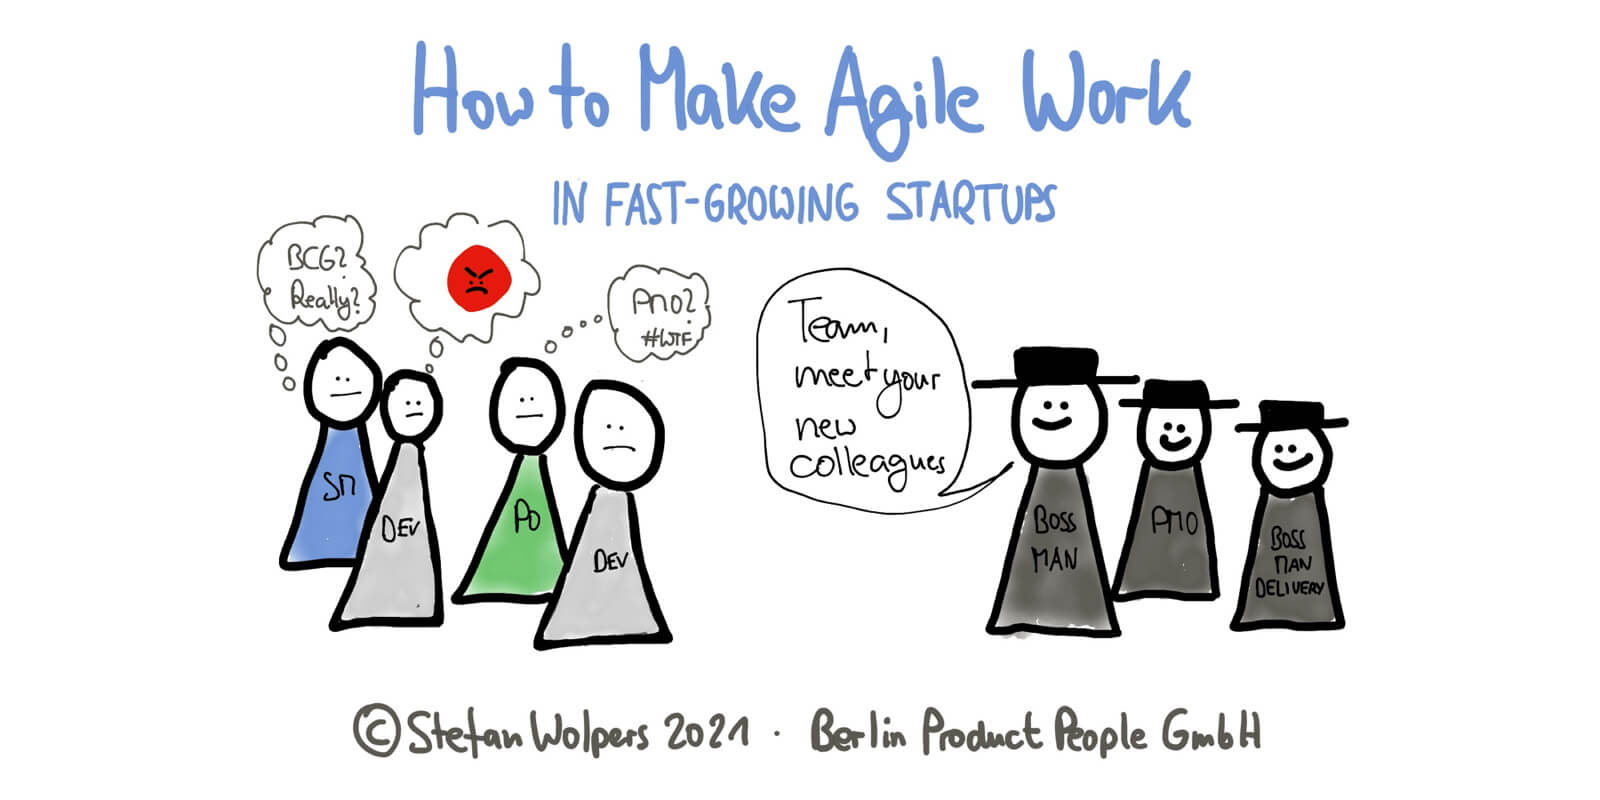 How to Make Agile Work in Fast-Growing Startups